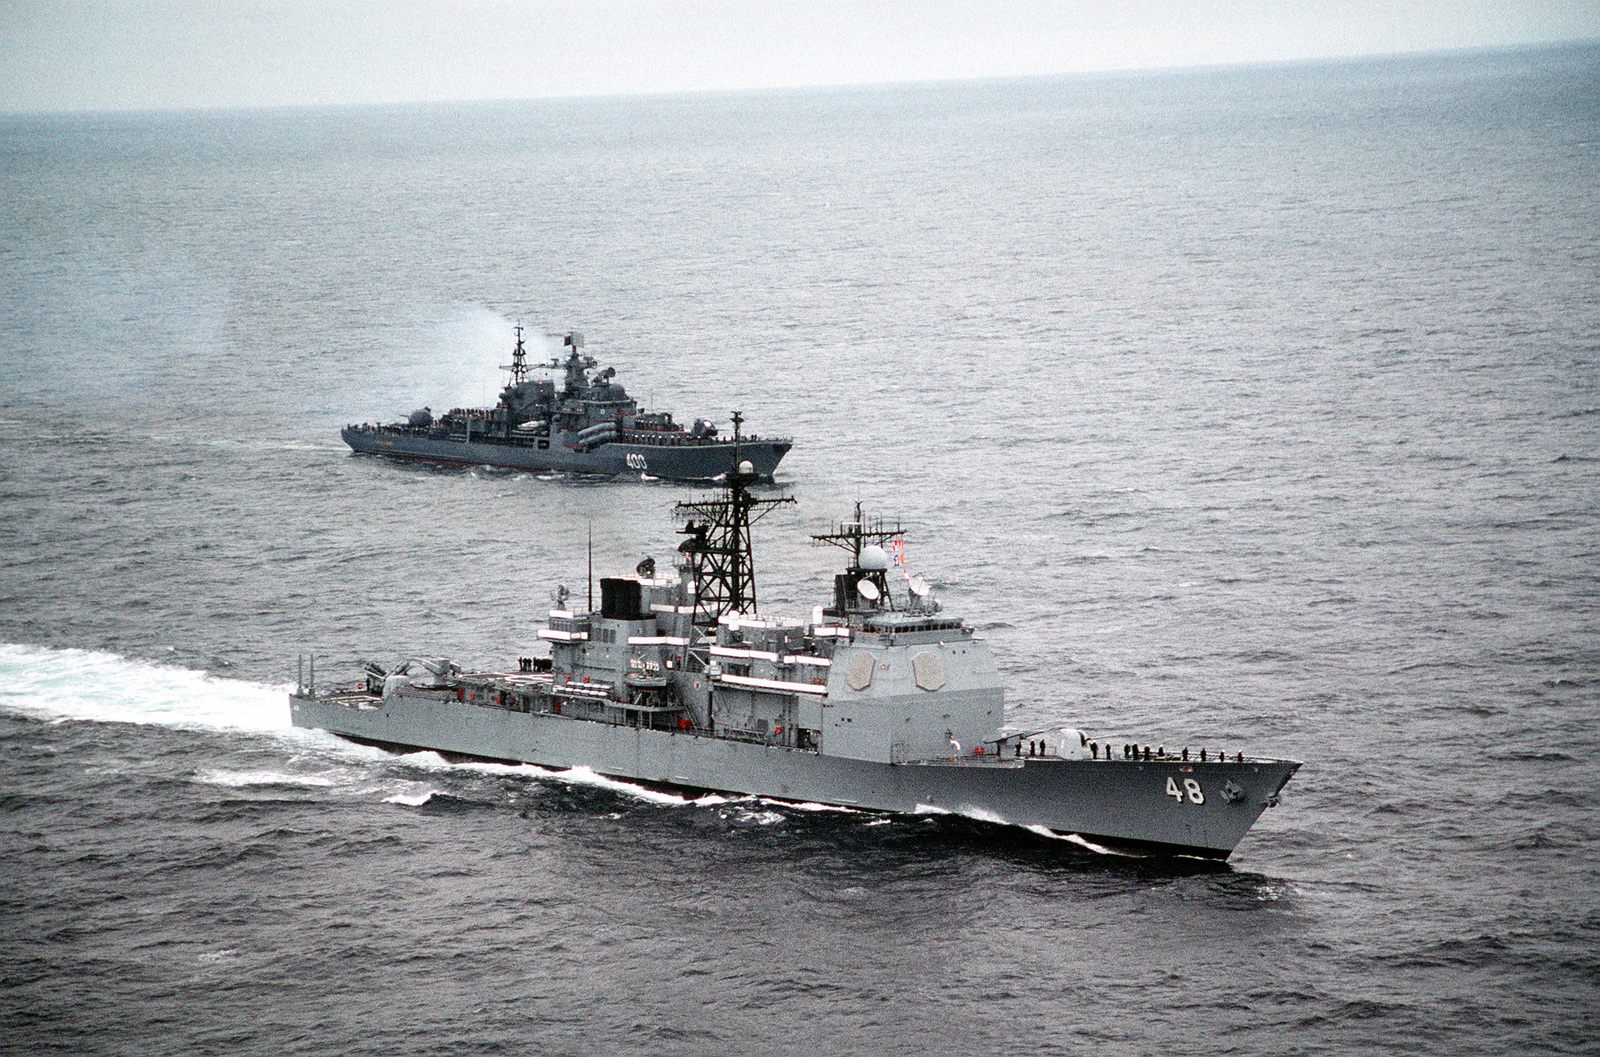 With the crews of both ships manning the rails in the naval tradition of rendering passing honors, the guided missile cruiser USS YORKTOWN (CG-48) steams alongside the Russian Sovremenny class destroyer RASTOROPNNY (EM-400) while heading for the Russian city of Severomorsk